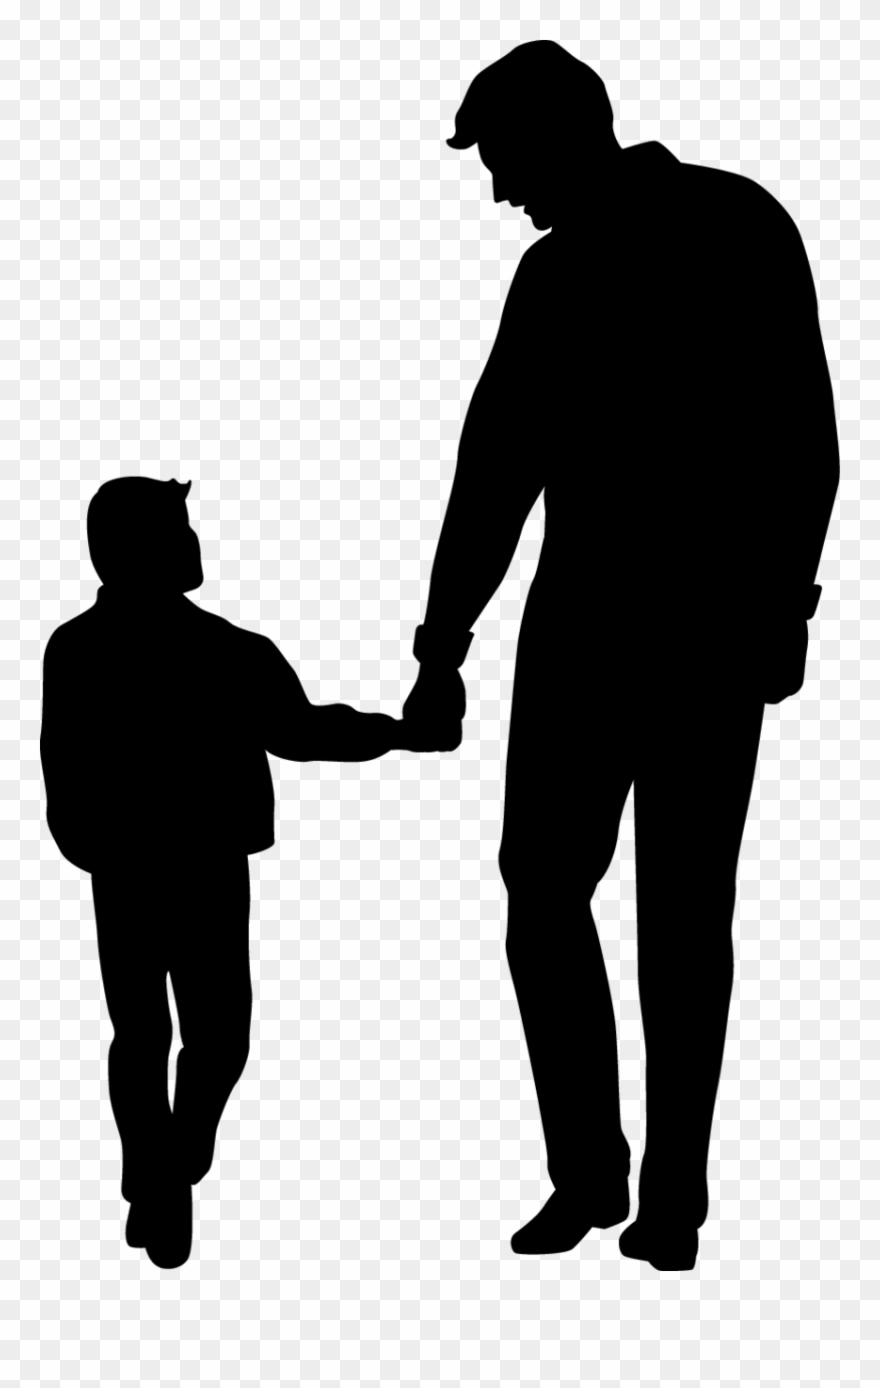 Dad and son clipart svg royalty free stock Father\'s Day Son Clip Art - Father And Son Silhouette Vector - Png ... svg royalty free stock